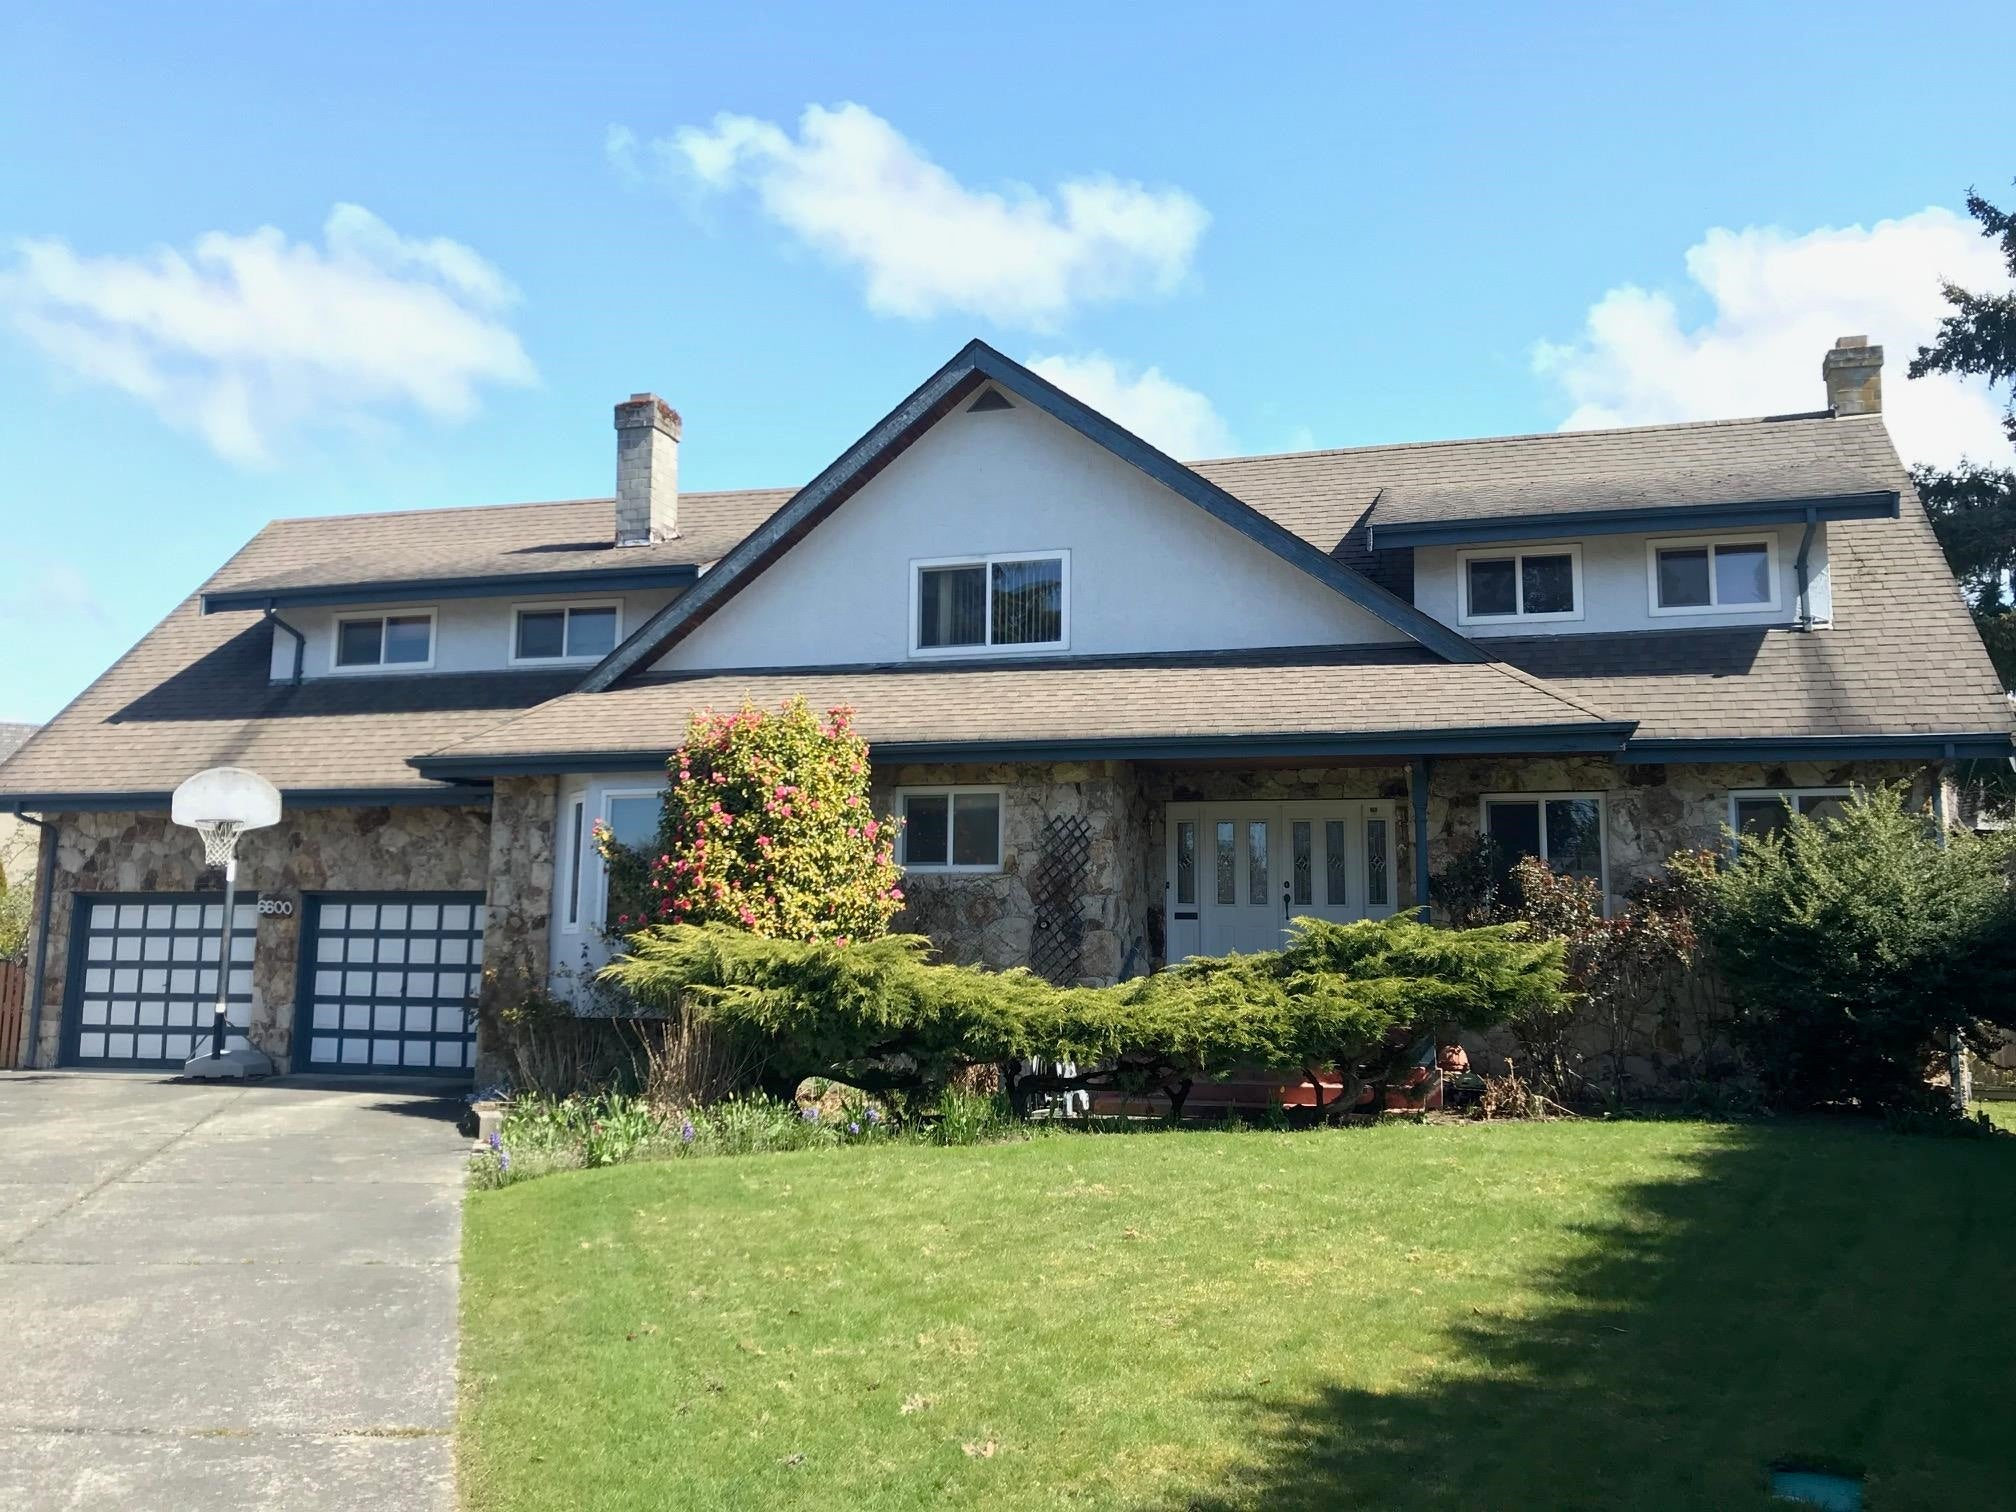 6600 CONSTABLE DRIVE - Woodwards House/Single Family for sale, 5 Bedrooms (R2611074)